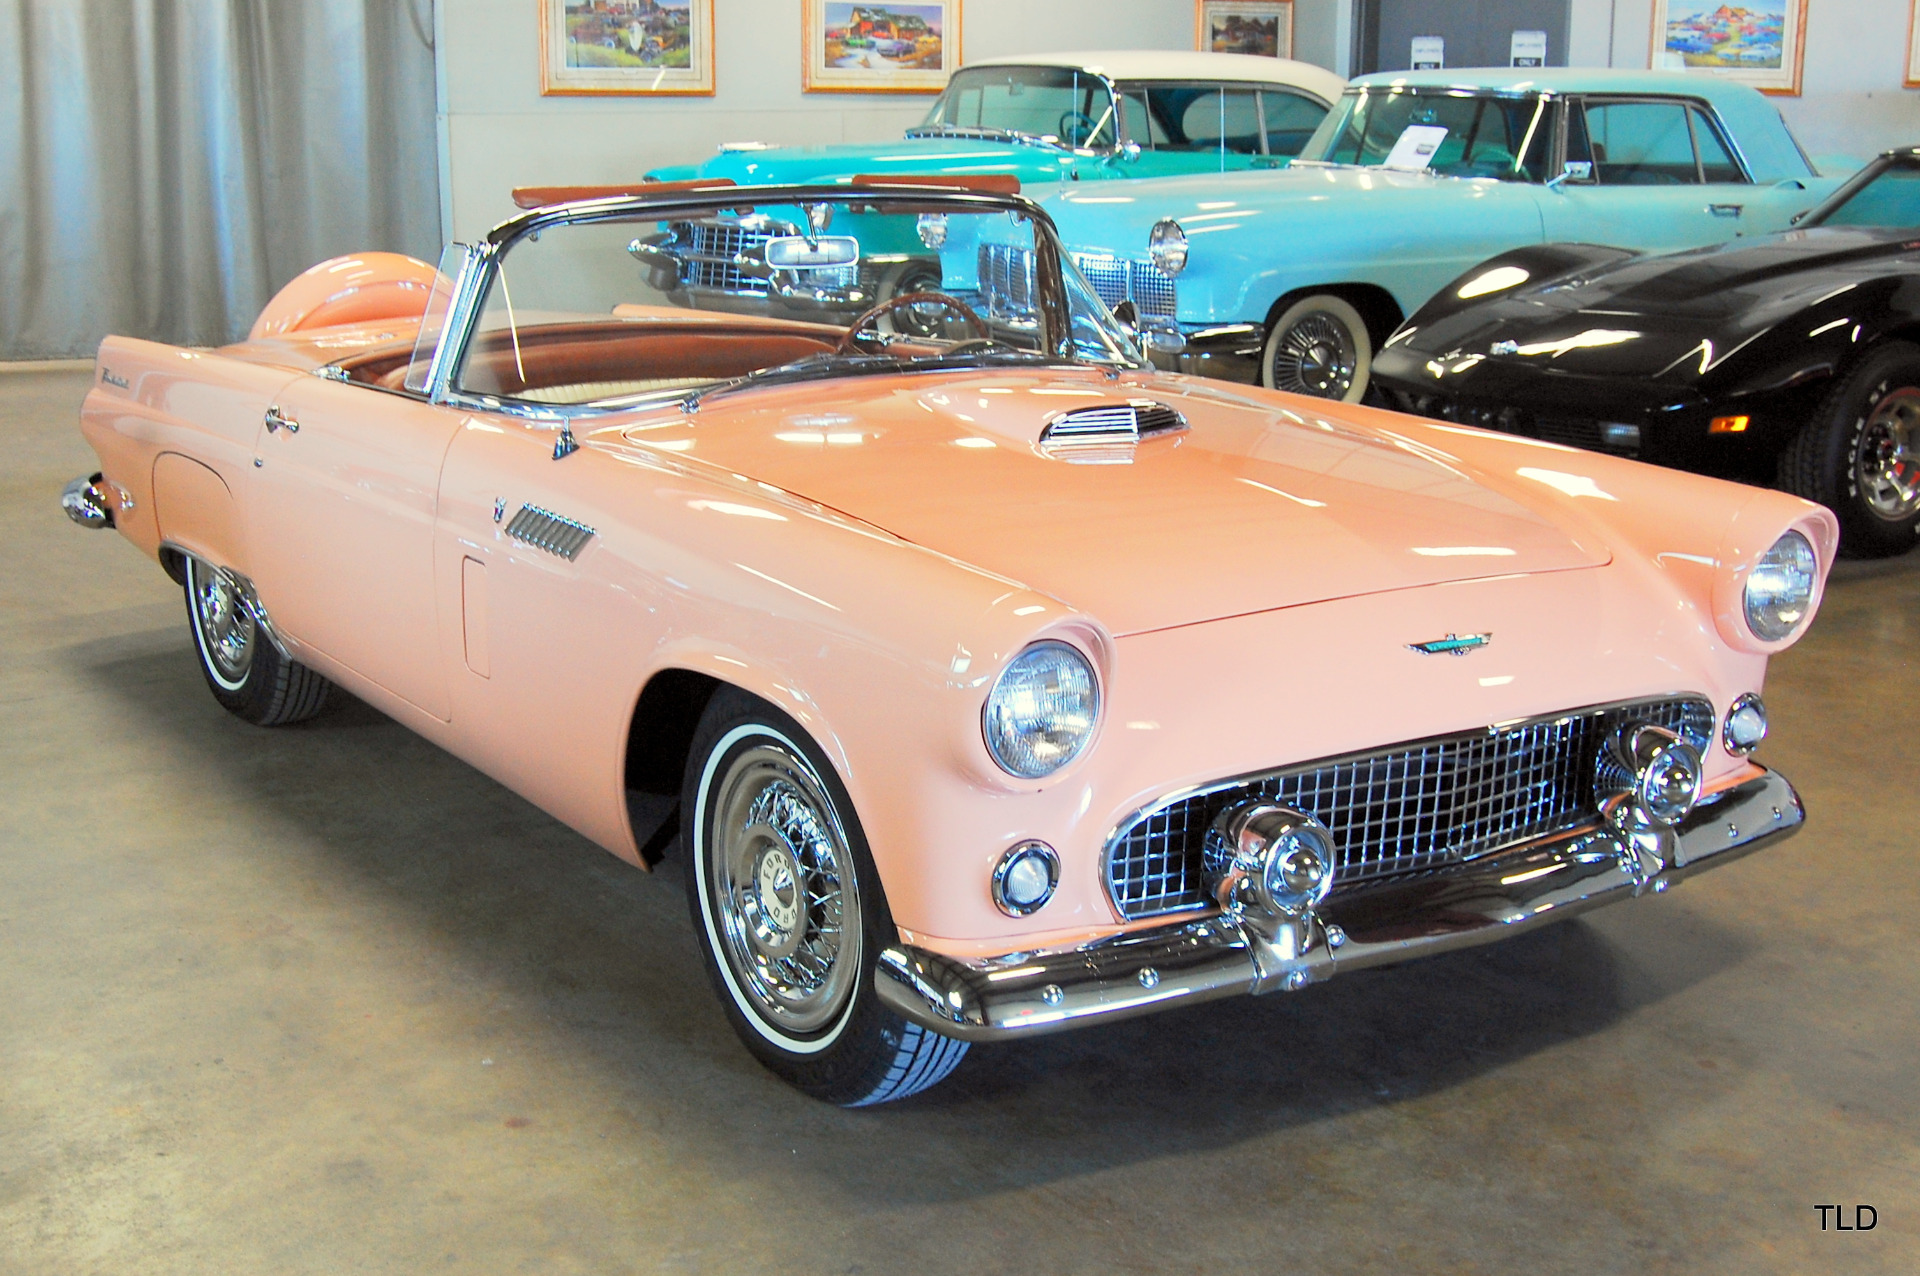 1956 ford thunderbird used ford thunderbird for sale in north chicago illinois. Black Bedroom Furniture Sets. Home Design Ideas